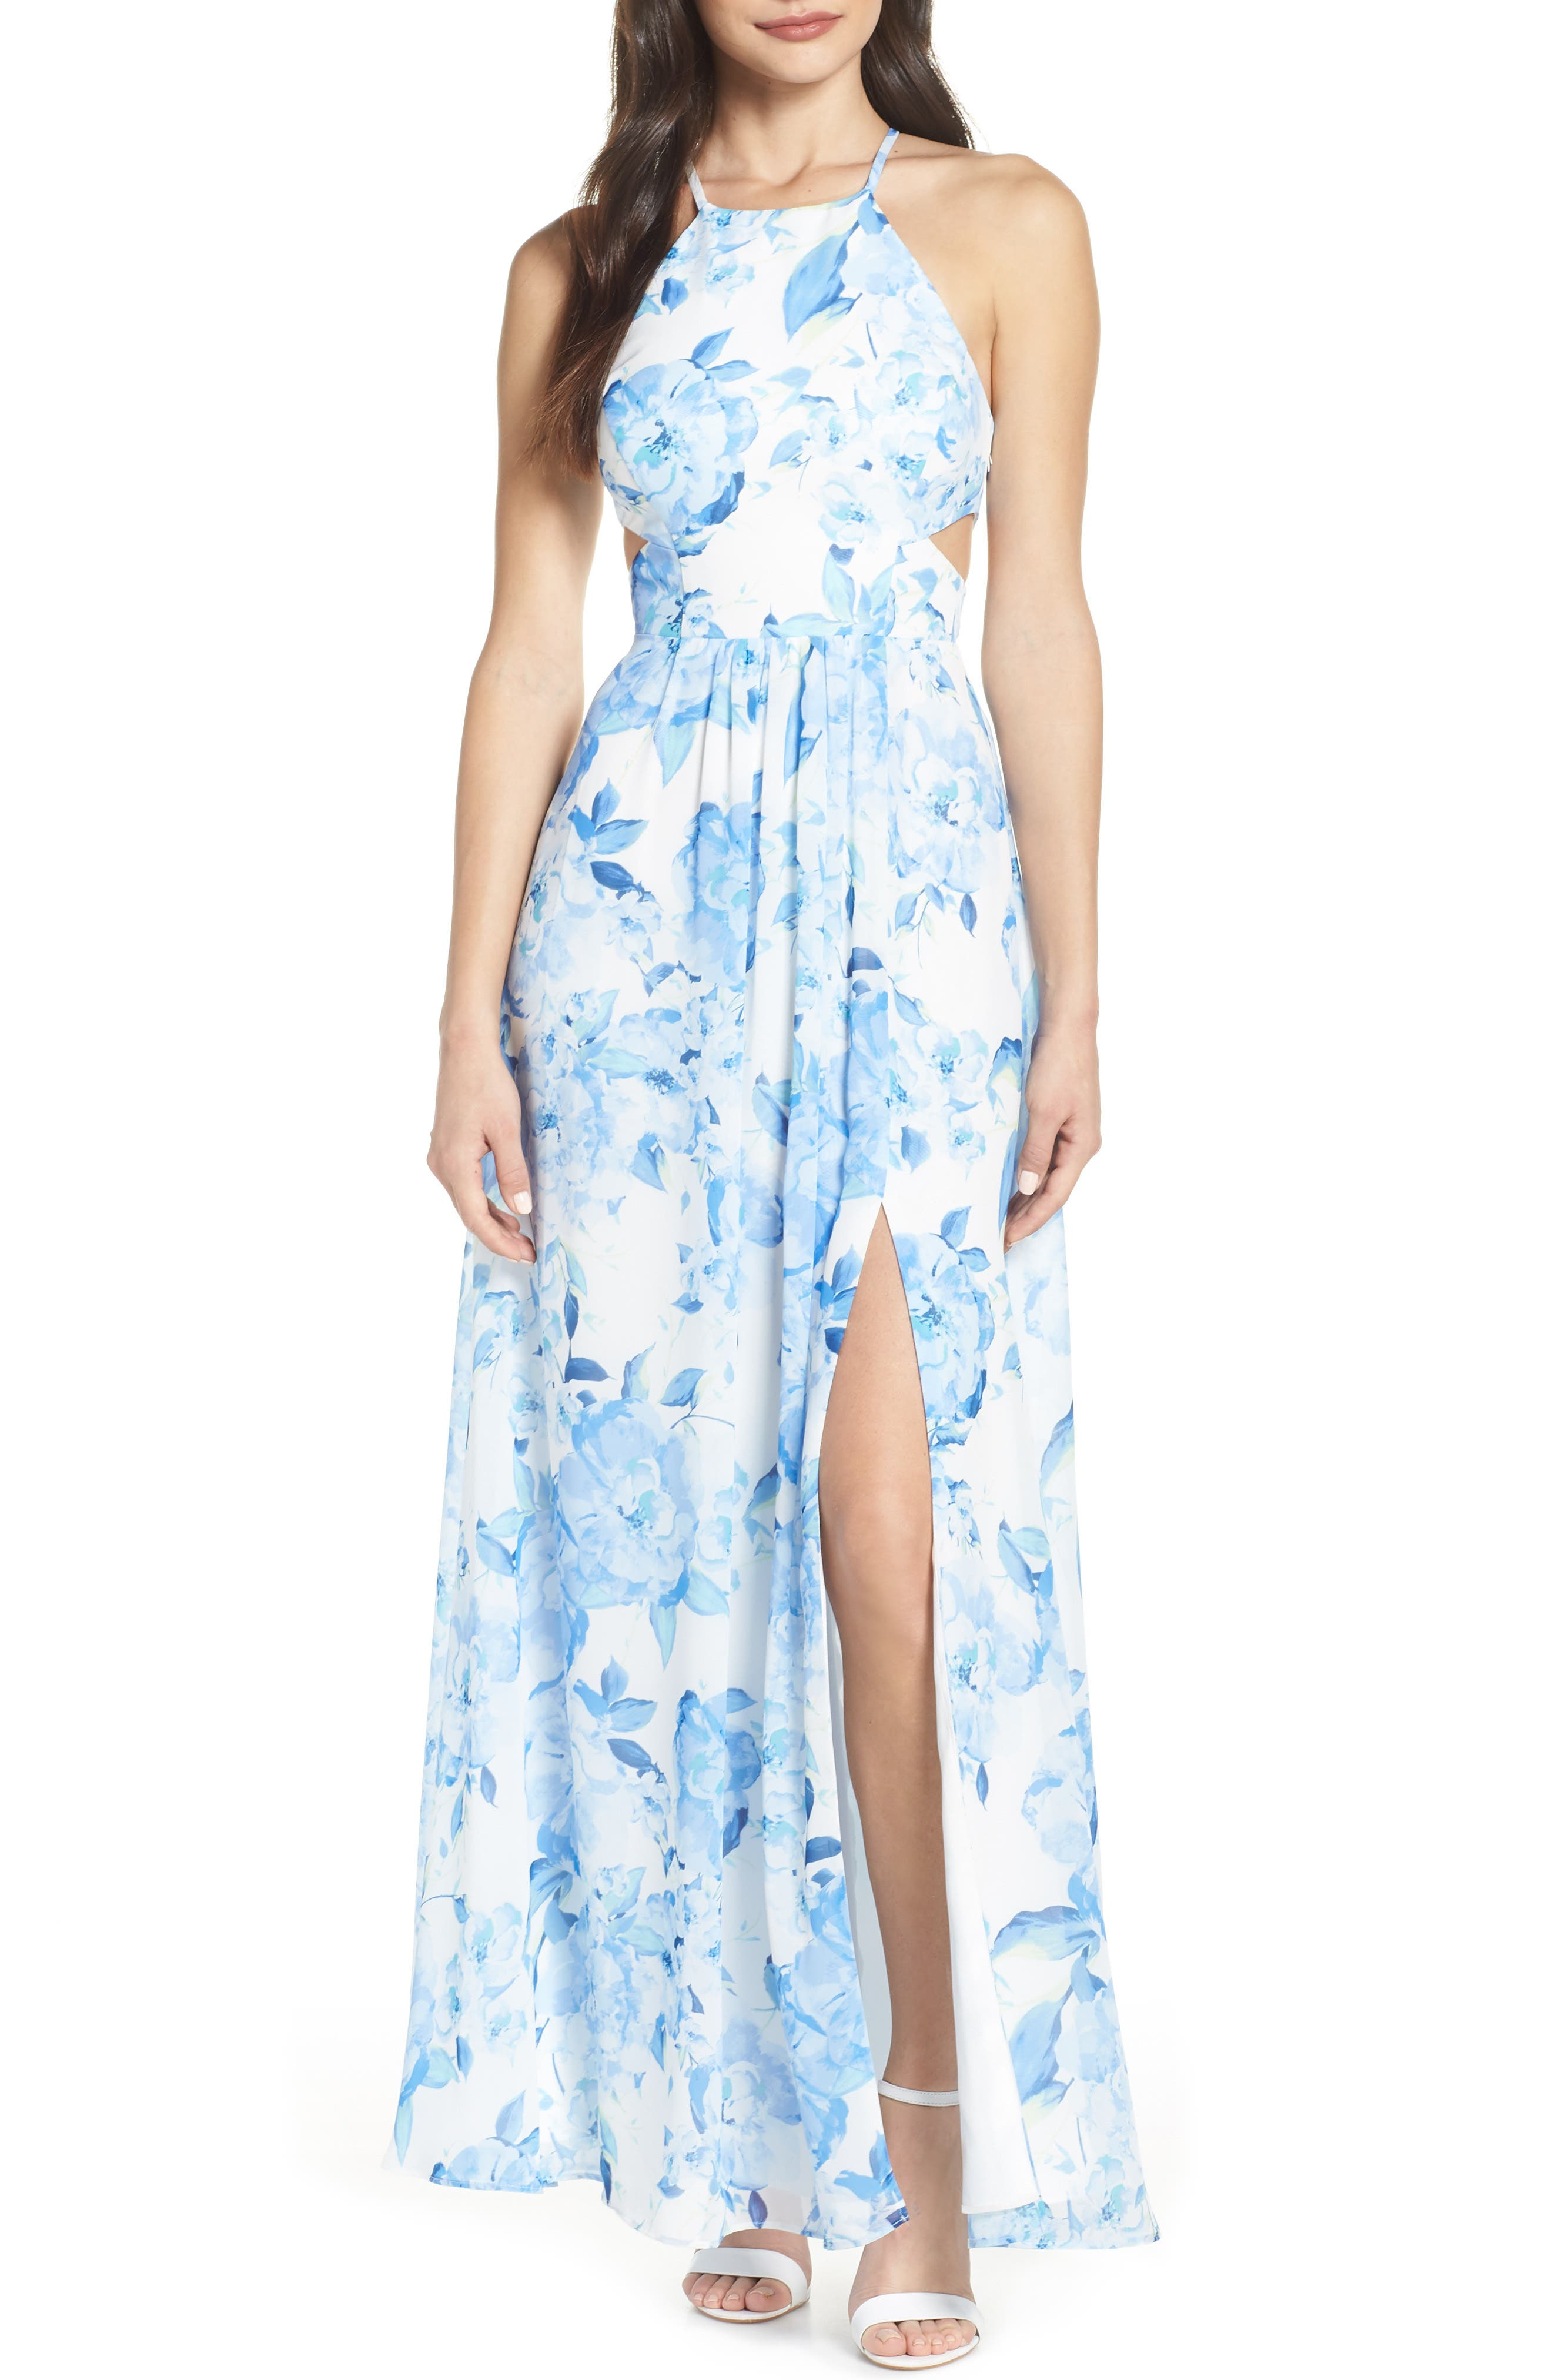 Morgan & Co. Floral Print Strappy Back Evening Dress, White